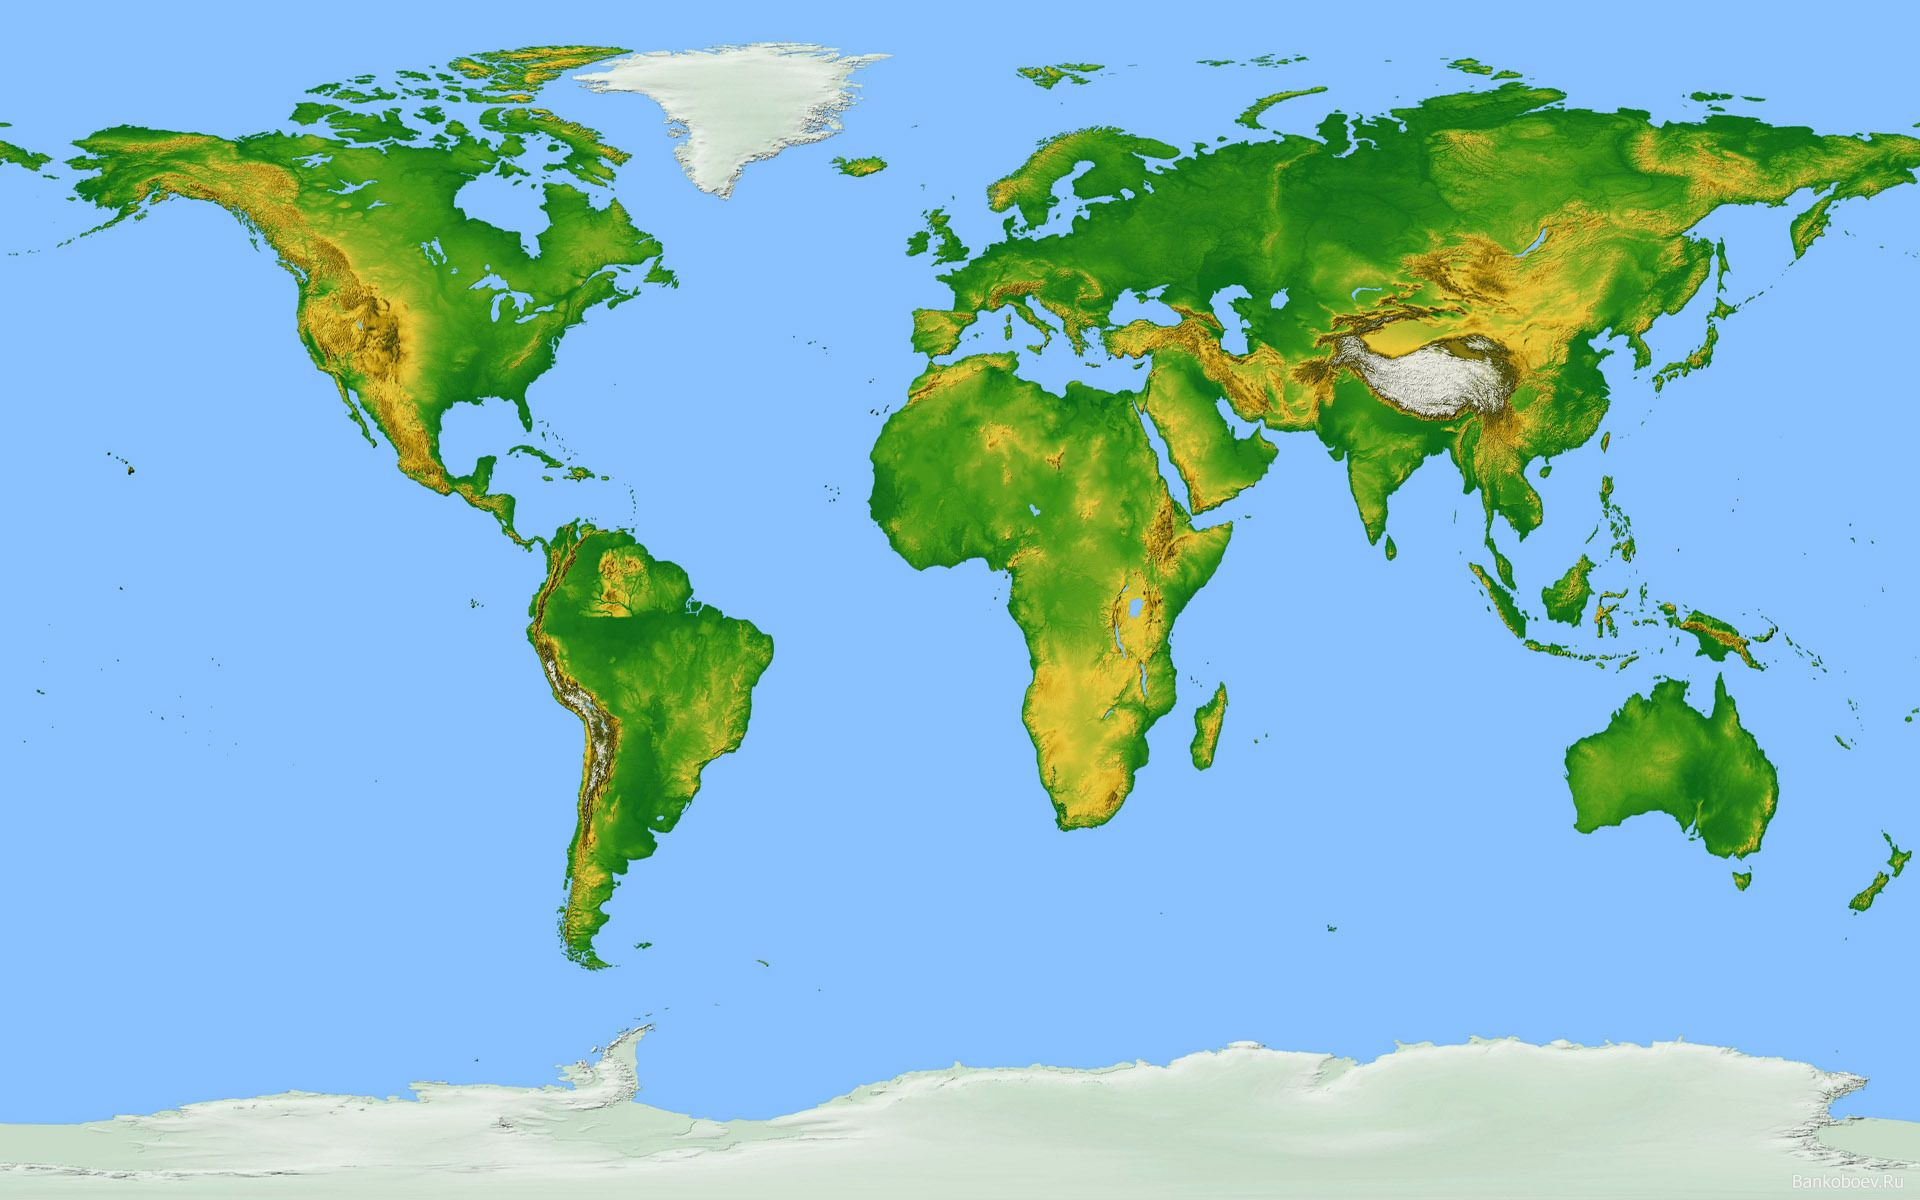 Geographic world map wallpaper download geographic world map geographic world map wallpaper download geographic world map wallpaper maps free online gumiabroncs Choice Image